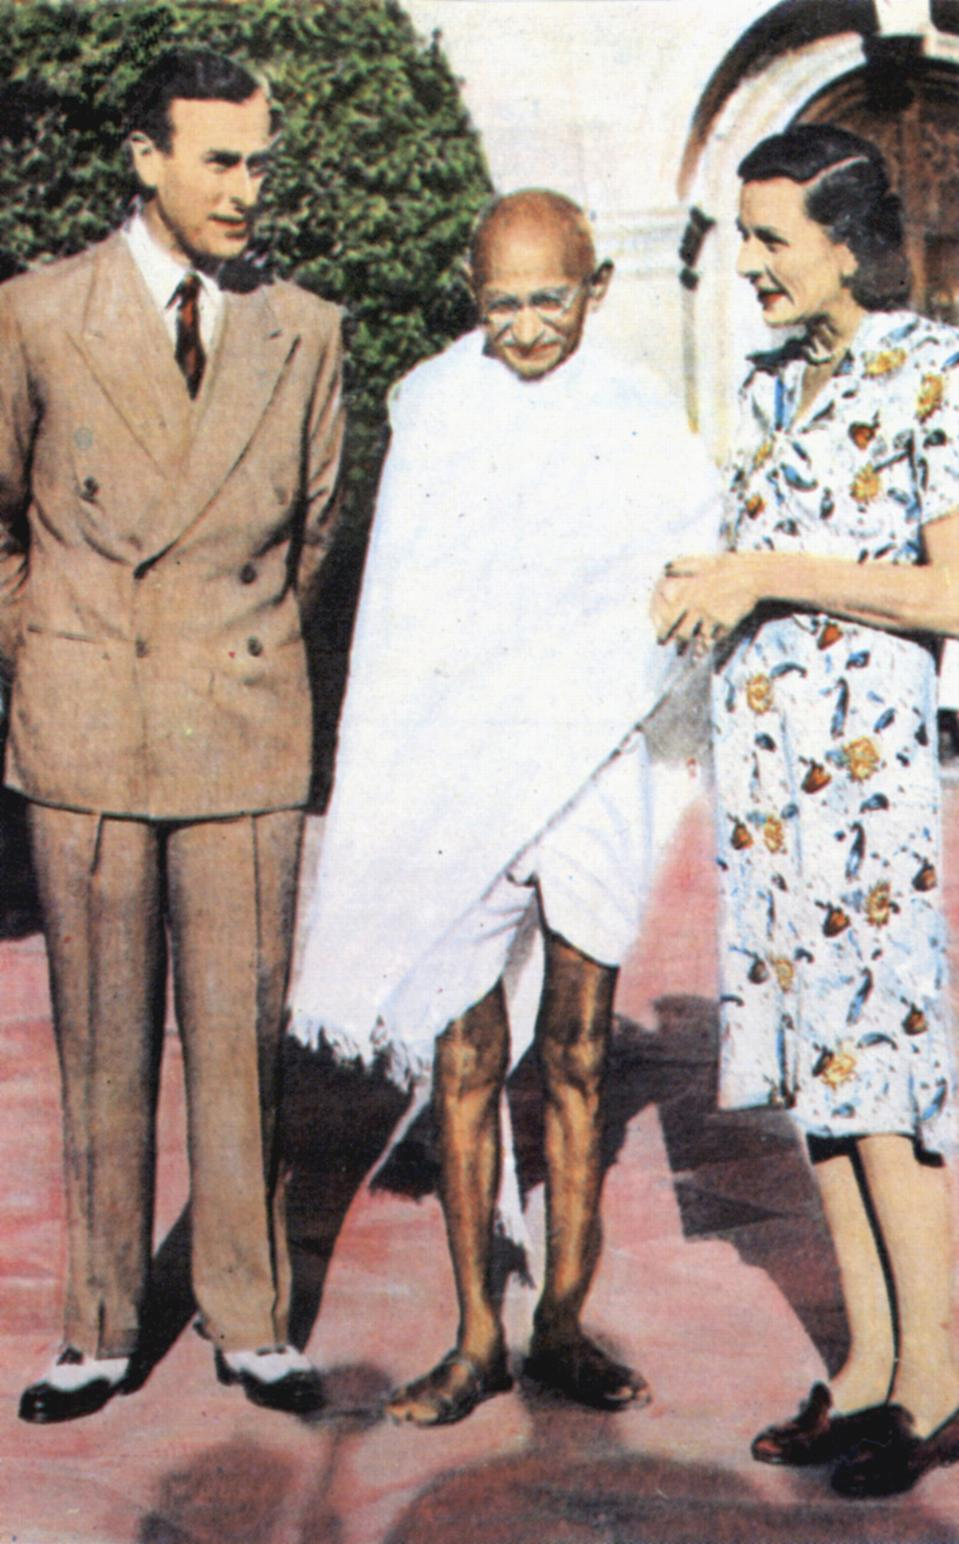 Mohondas Karamchand Gandhi (1869-1948), known as Mahatma (Great Soul). Indian Nationalist leader. Here he stands between Lord and Lady Mountbatten. (Photo by: Universal History Archive/Universal Images Group via Getty Images)